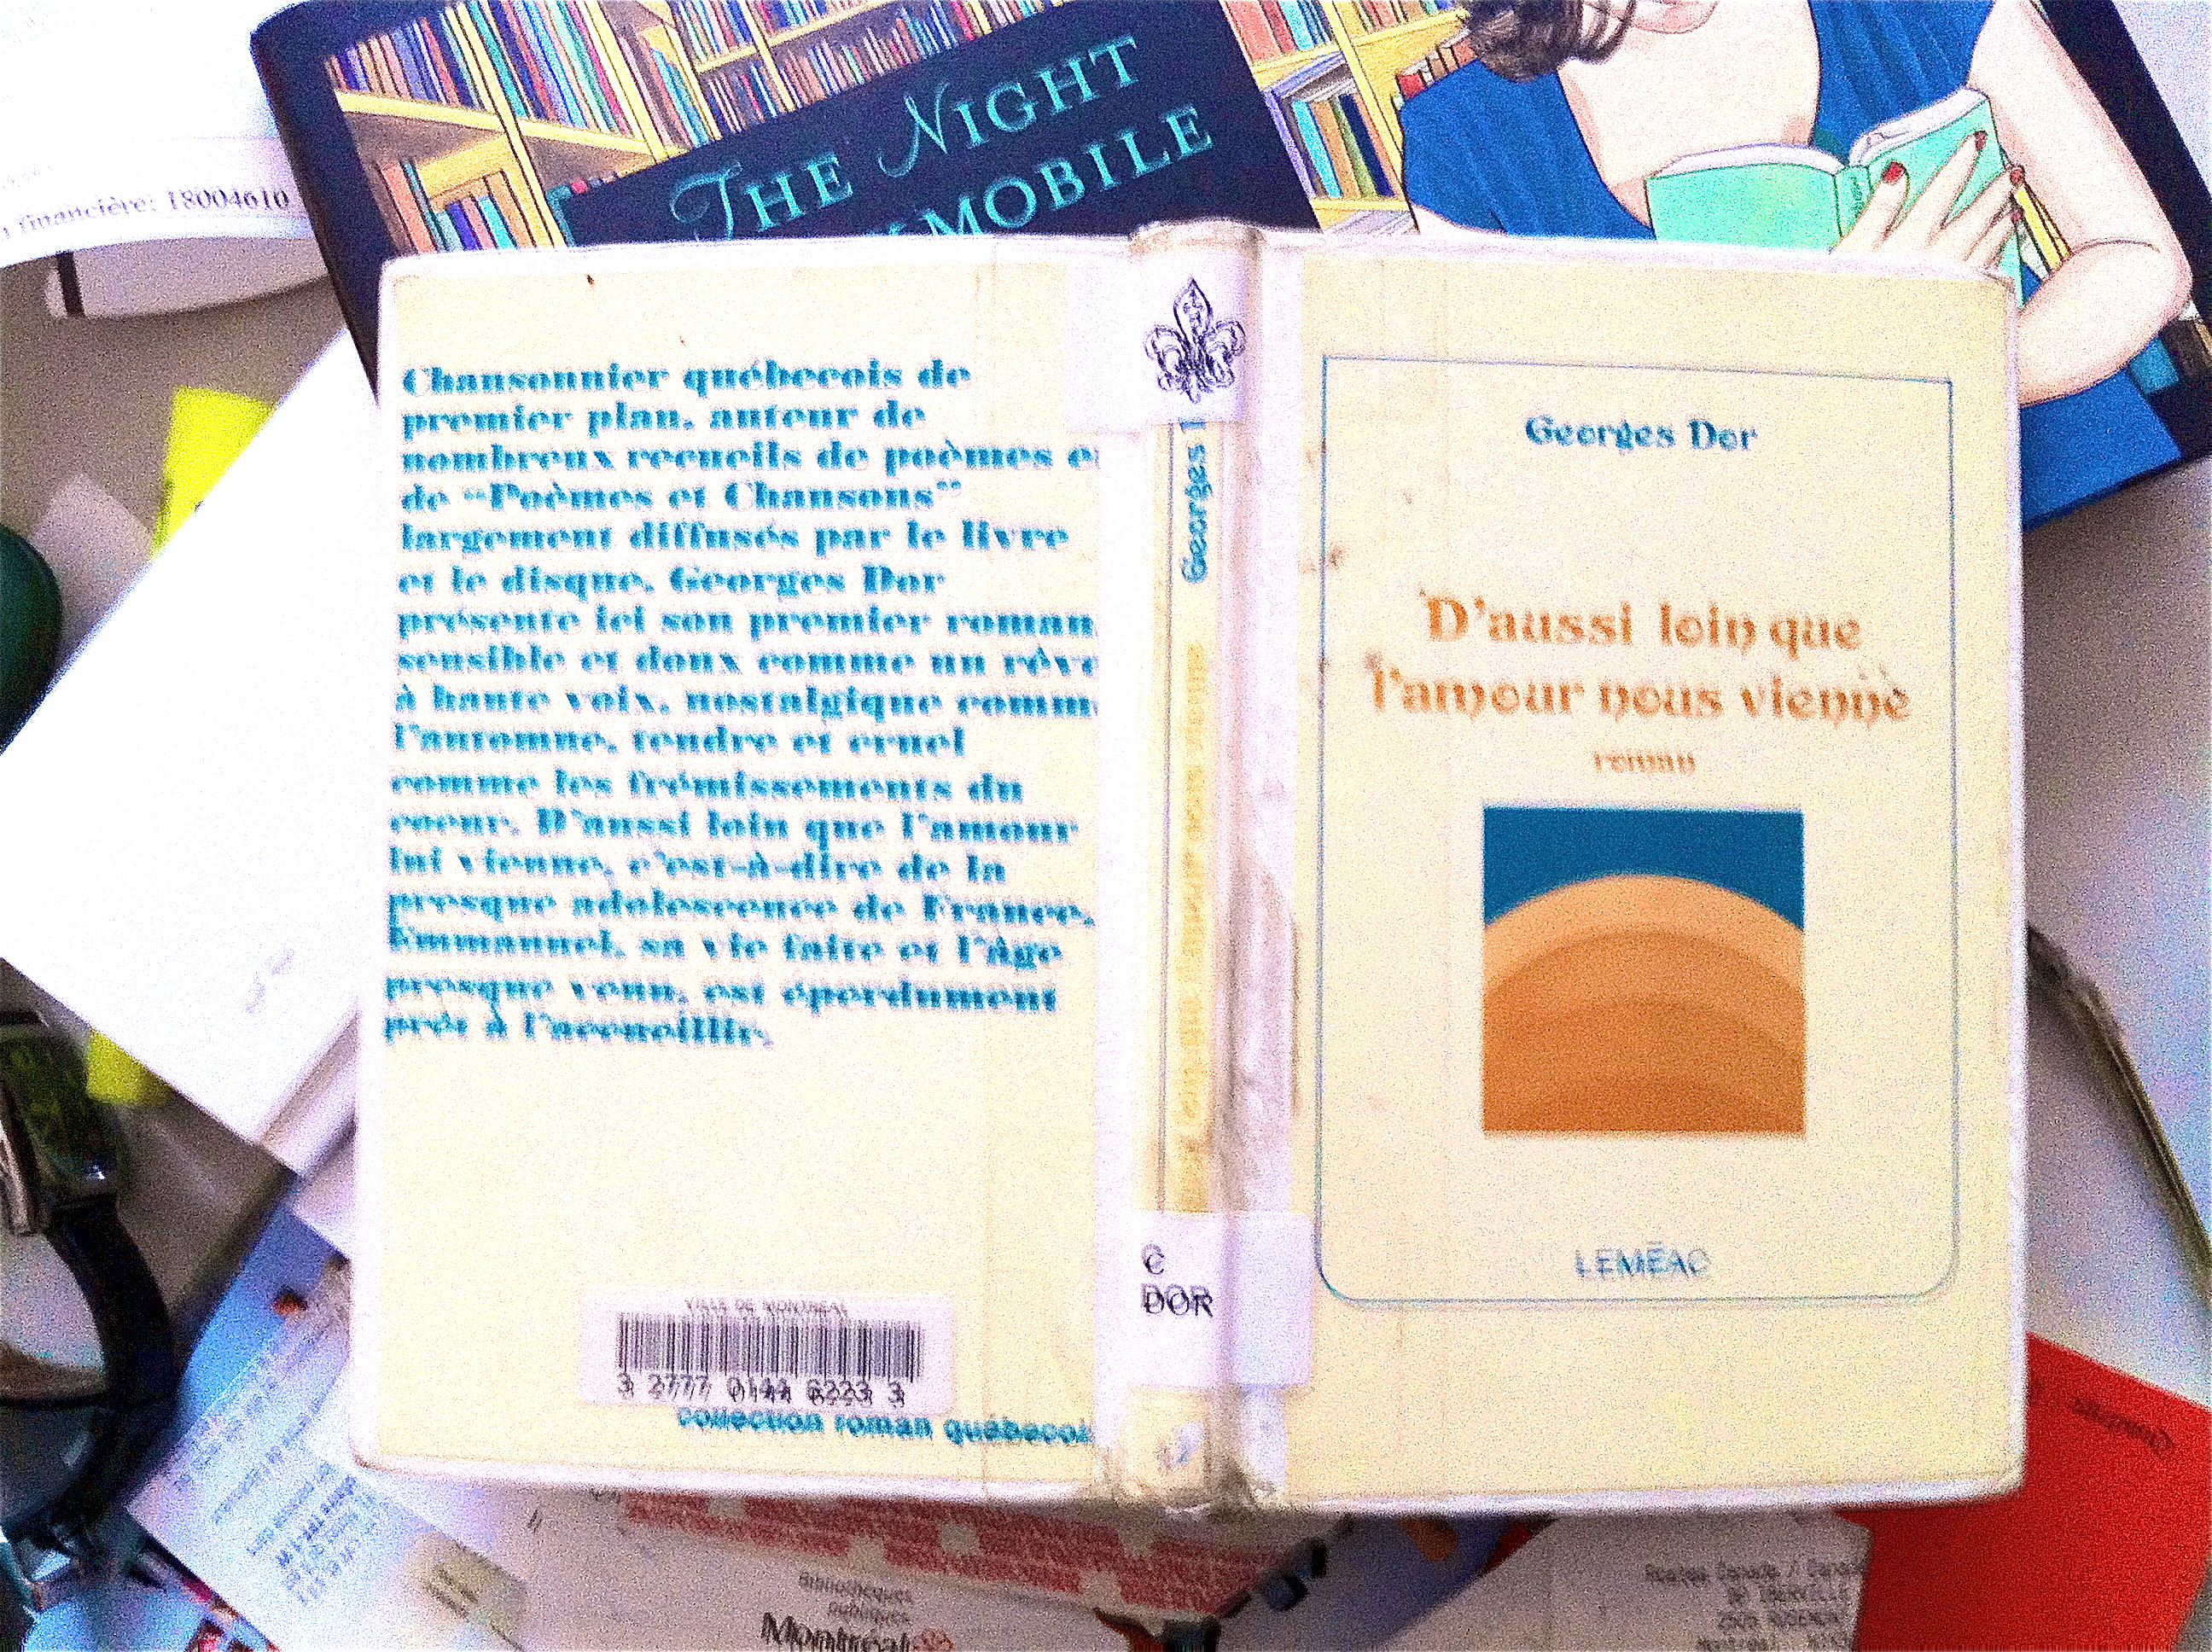 Photo de la couverture d'un livre de la collection des Bibliothques publiques de Montral